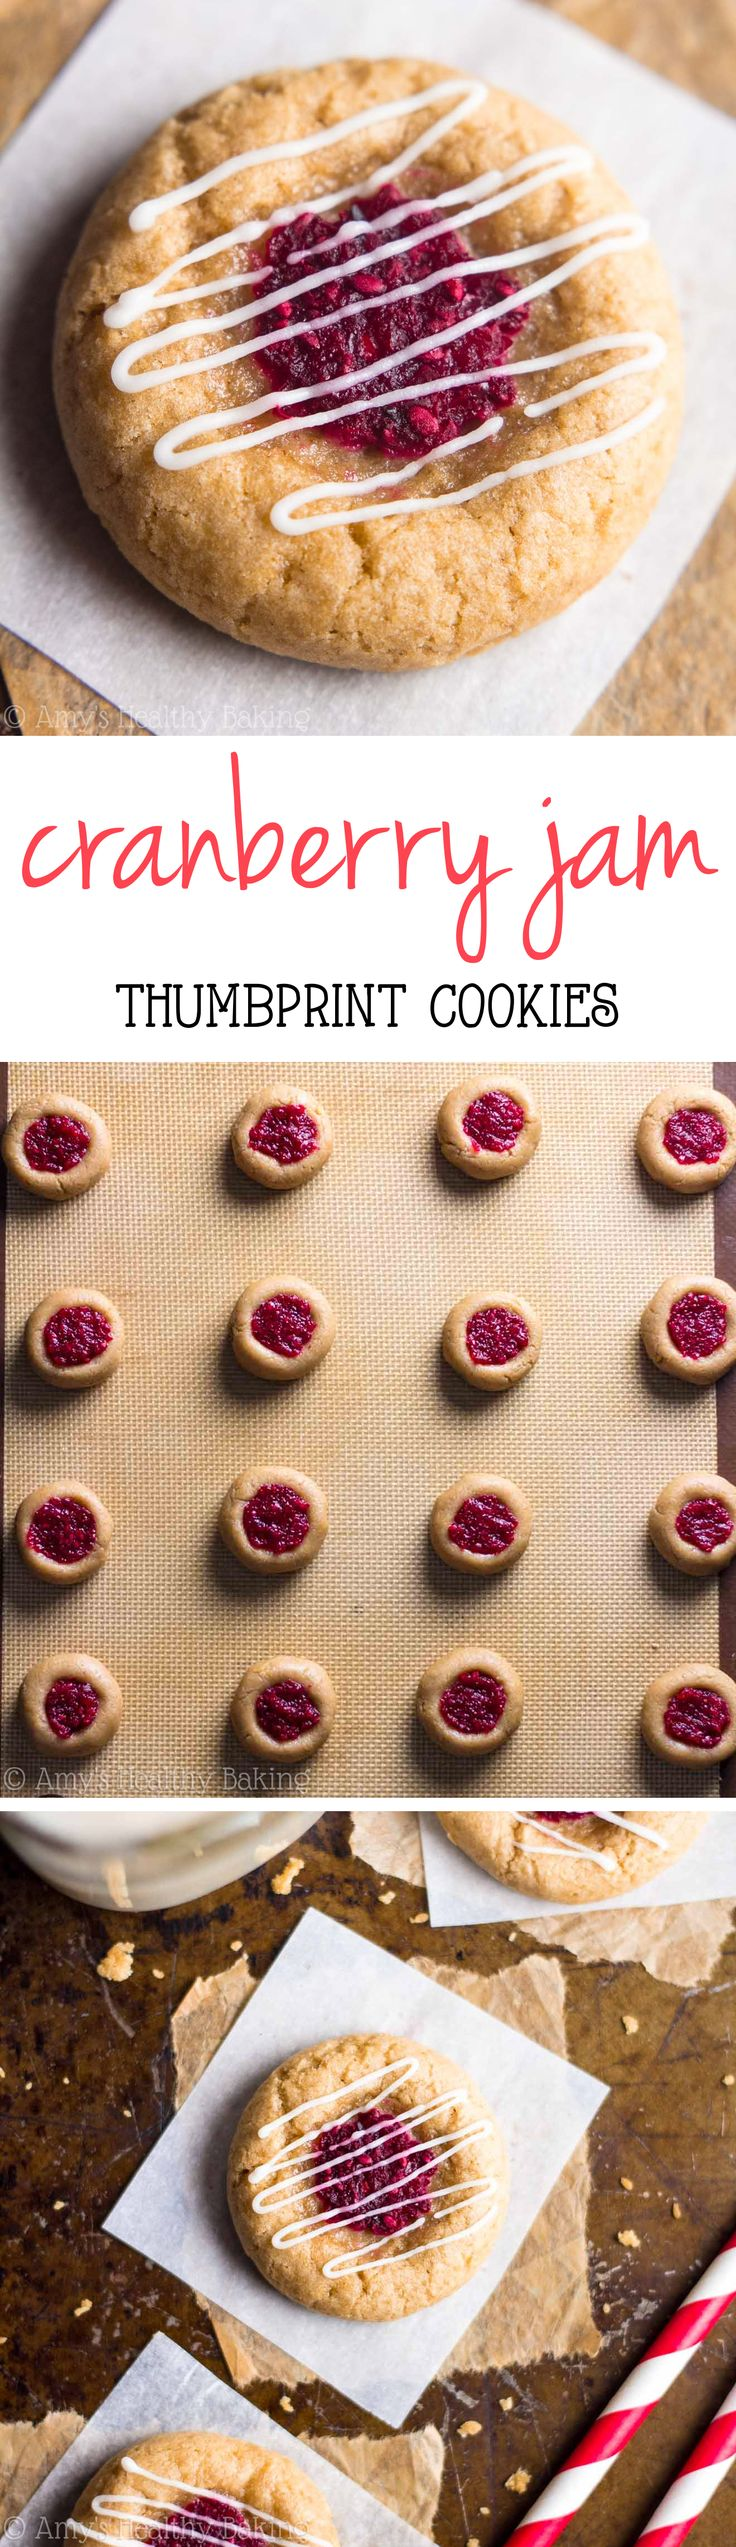 Skinny Cranberry Jam Thumbprint Cookies -- just 45 calories! Chewy, buttery & they don't taste healthy at all!